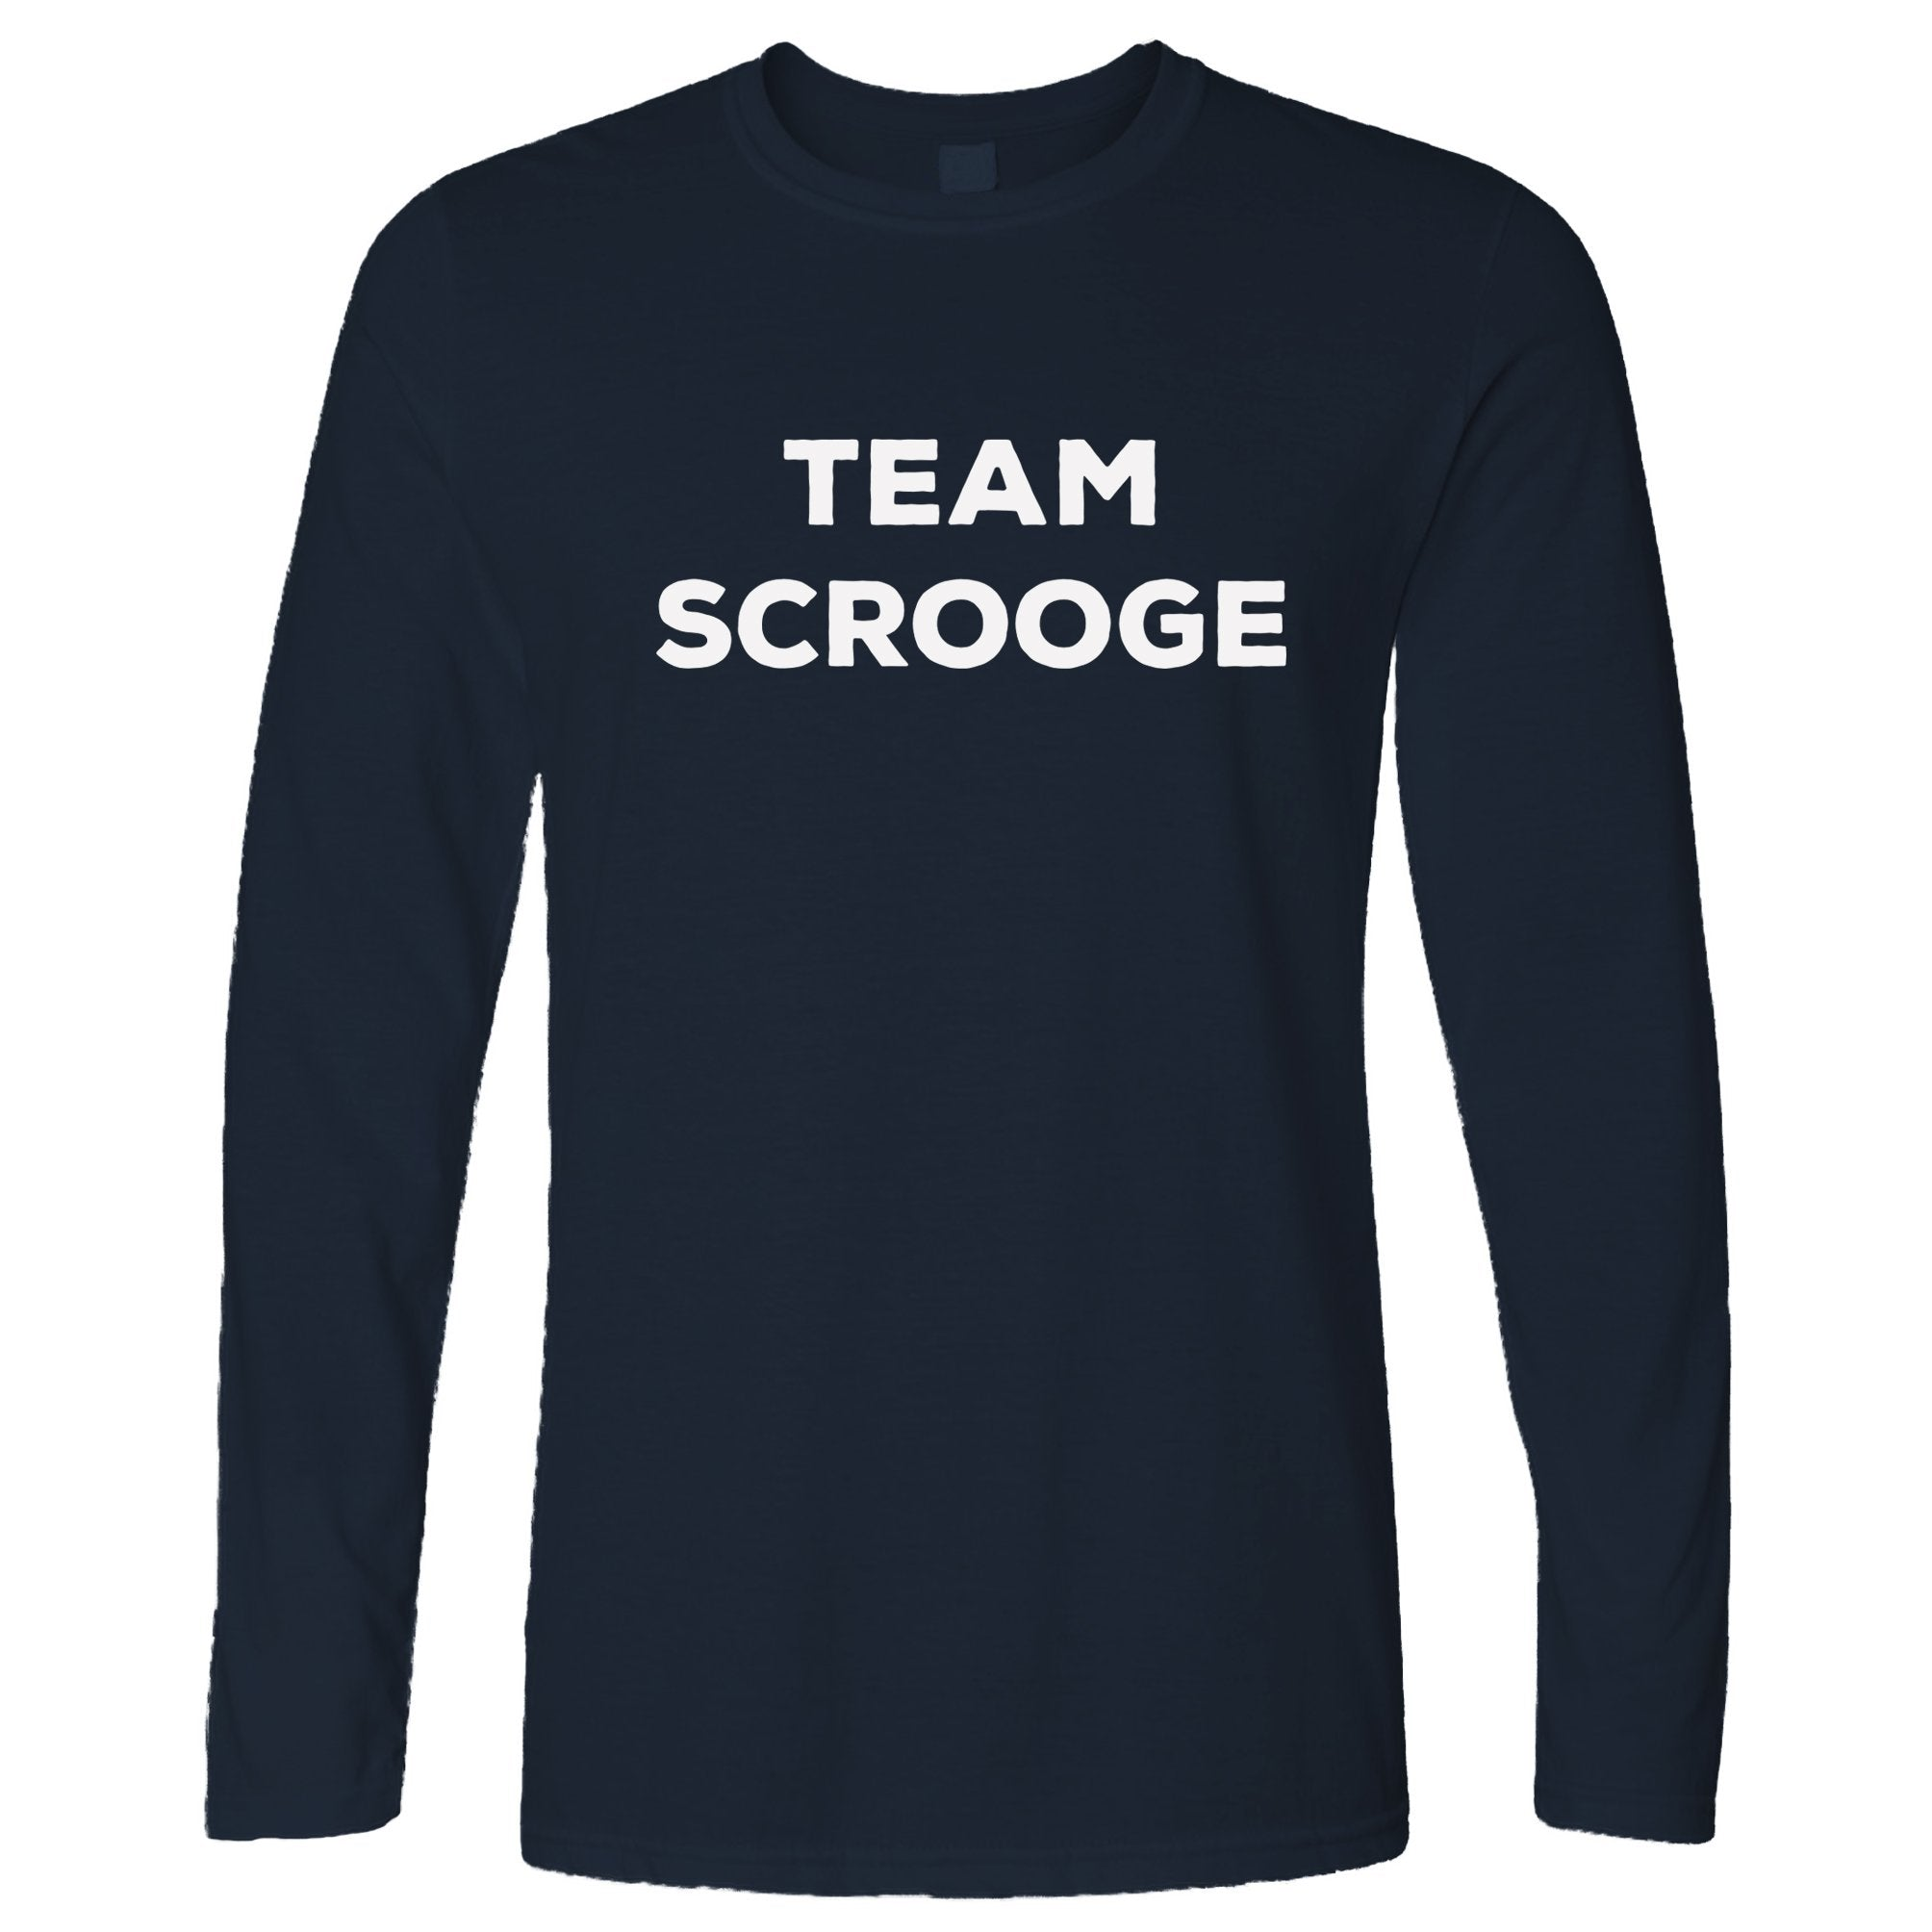 Novelty Anti-Christmas Long Sleeve Team Scrooge Slogan T-Shirt